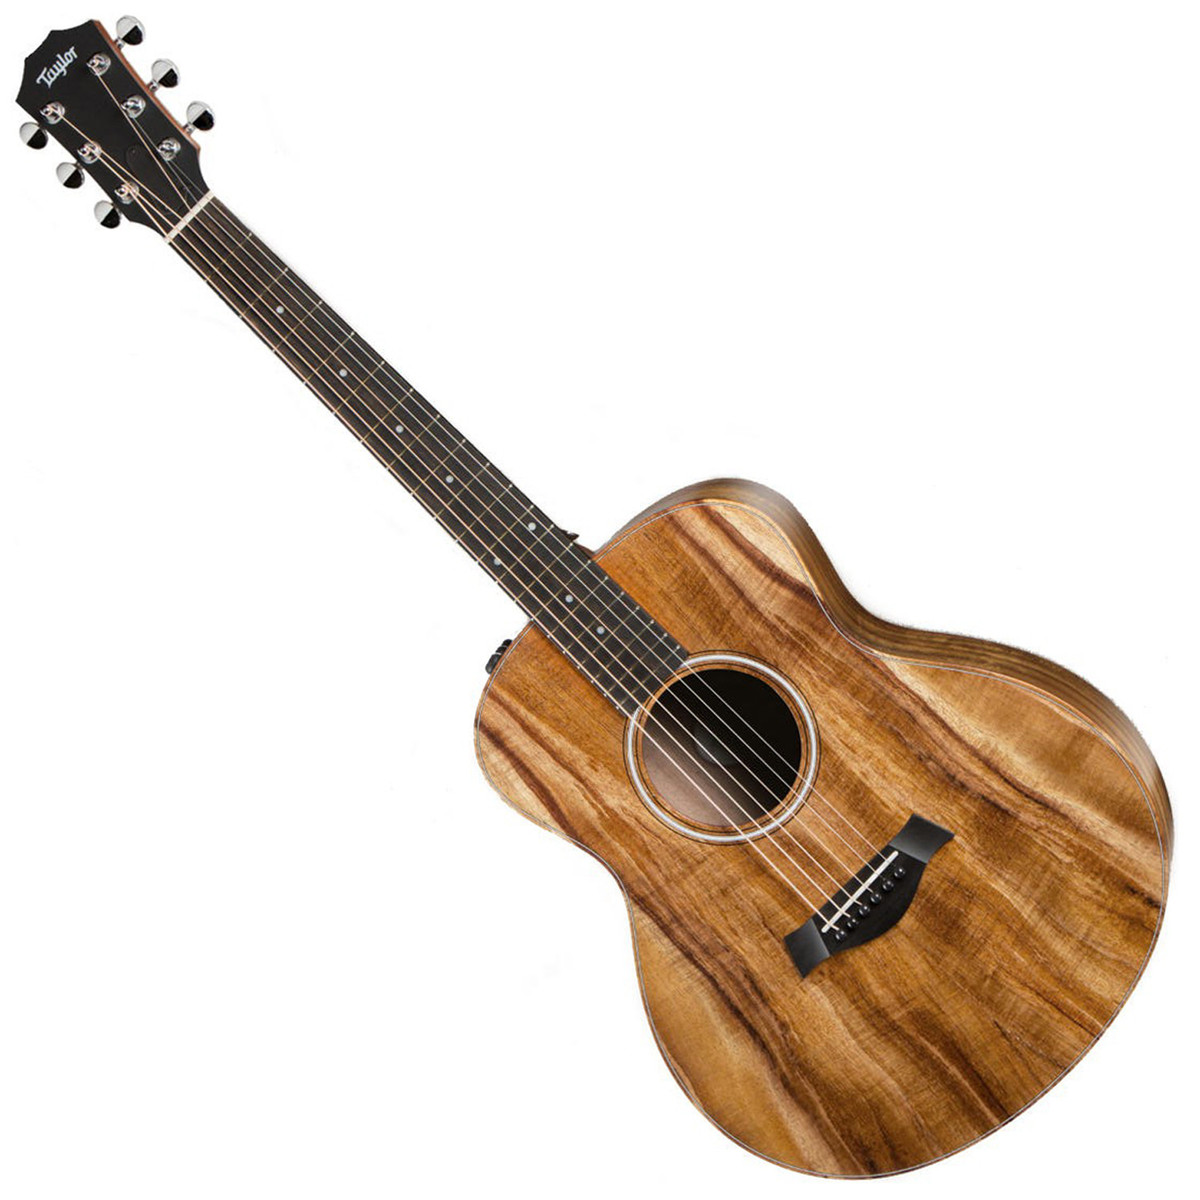 taylor gs mini e koa electro acoustic guitar left handed ex demo at gear4music. Black Bedroom Furniture Sets. Home Design Ideas